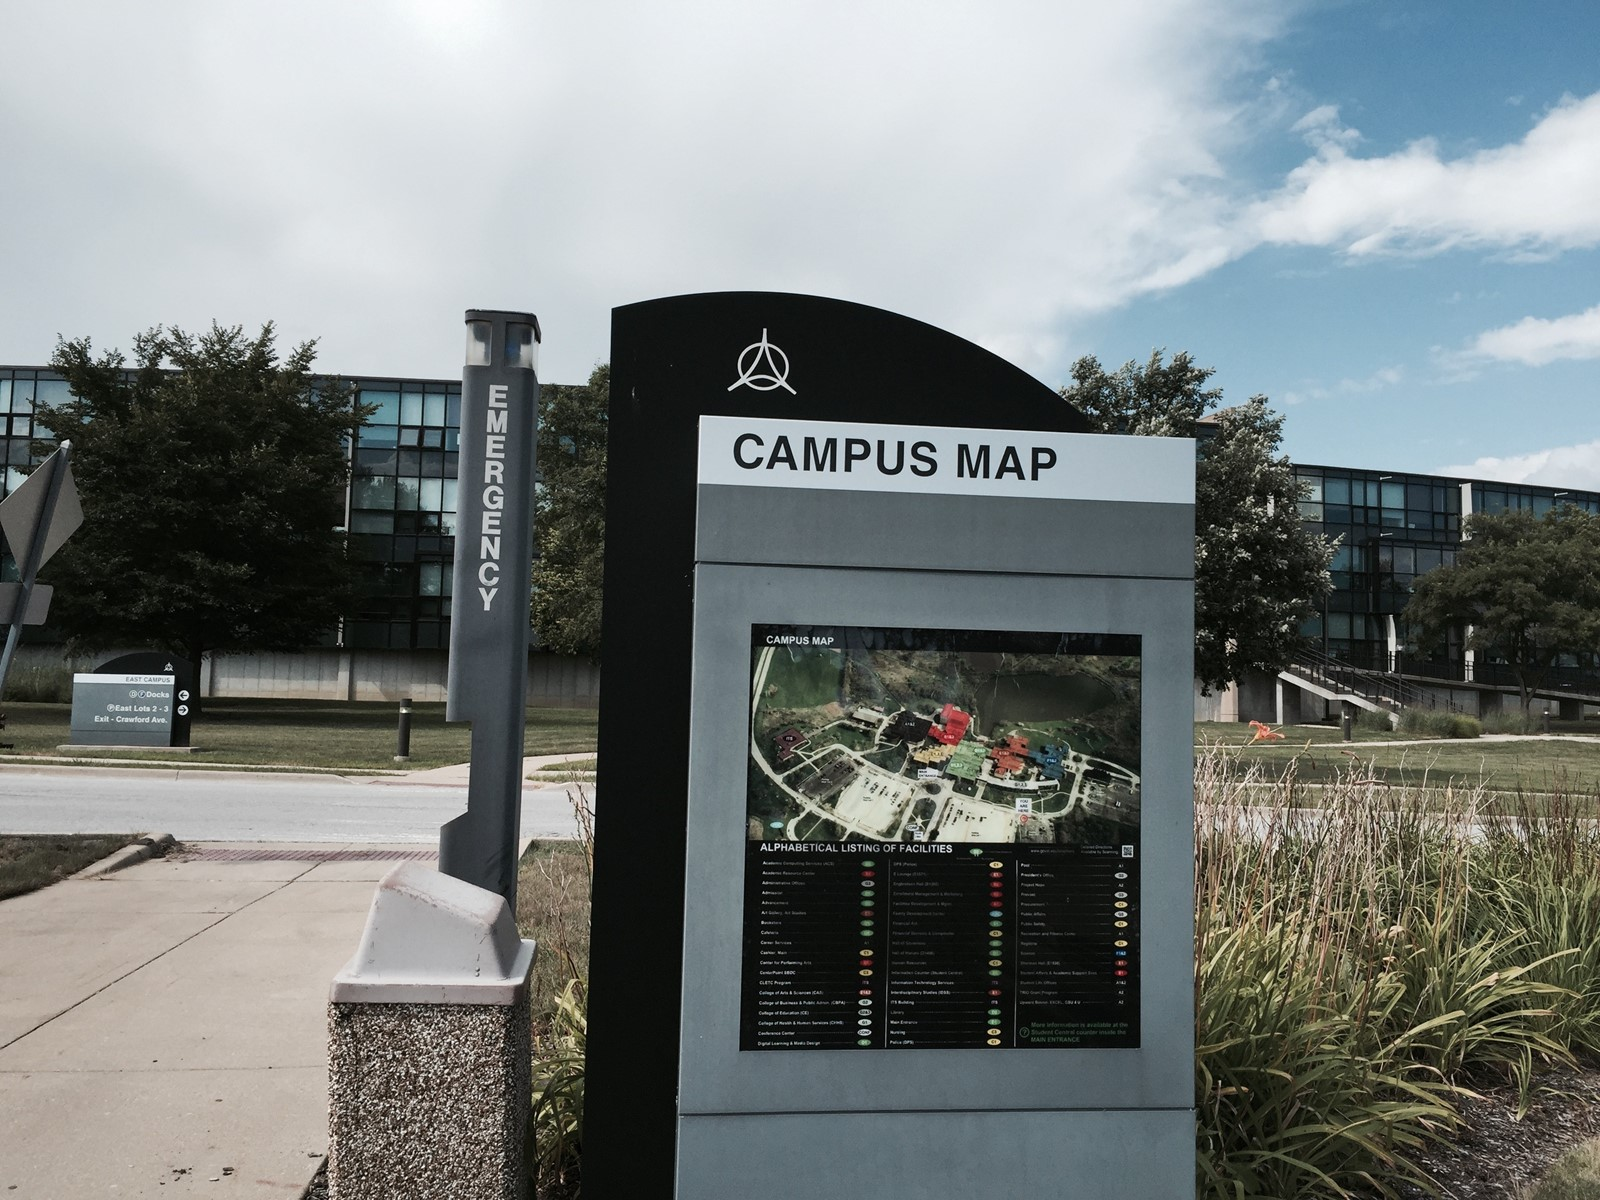 Governors State University Campus Map.Safety Is About Being Alert Daily Southtown